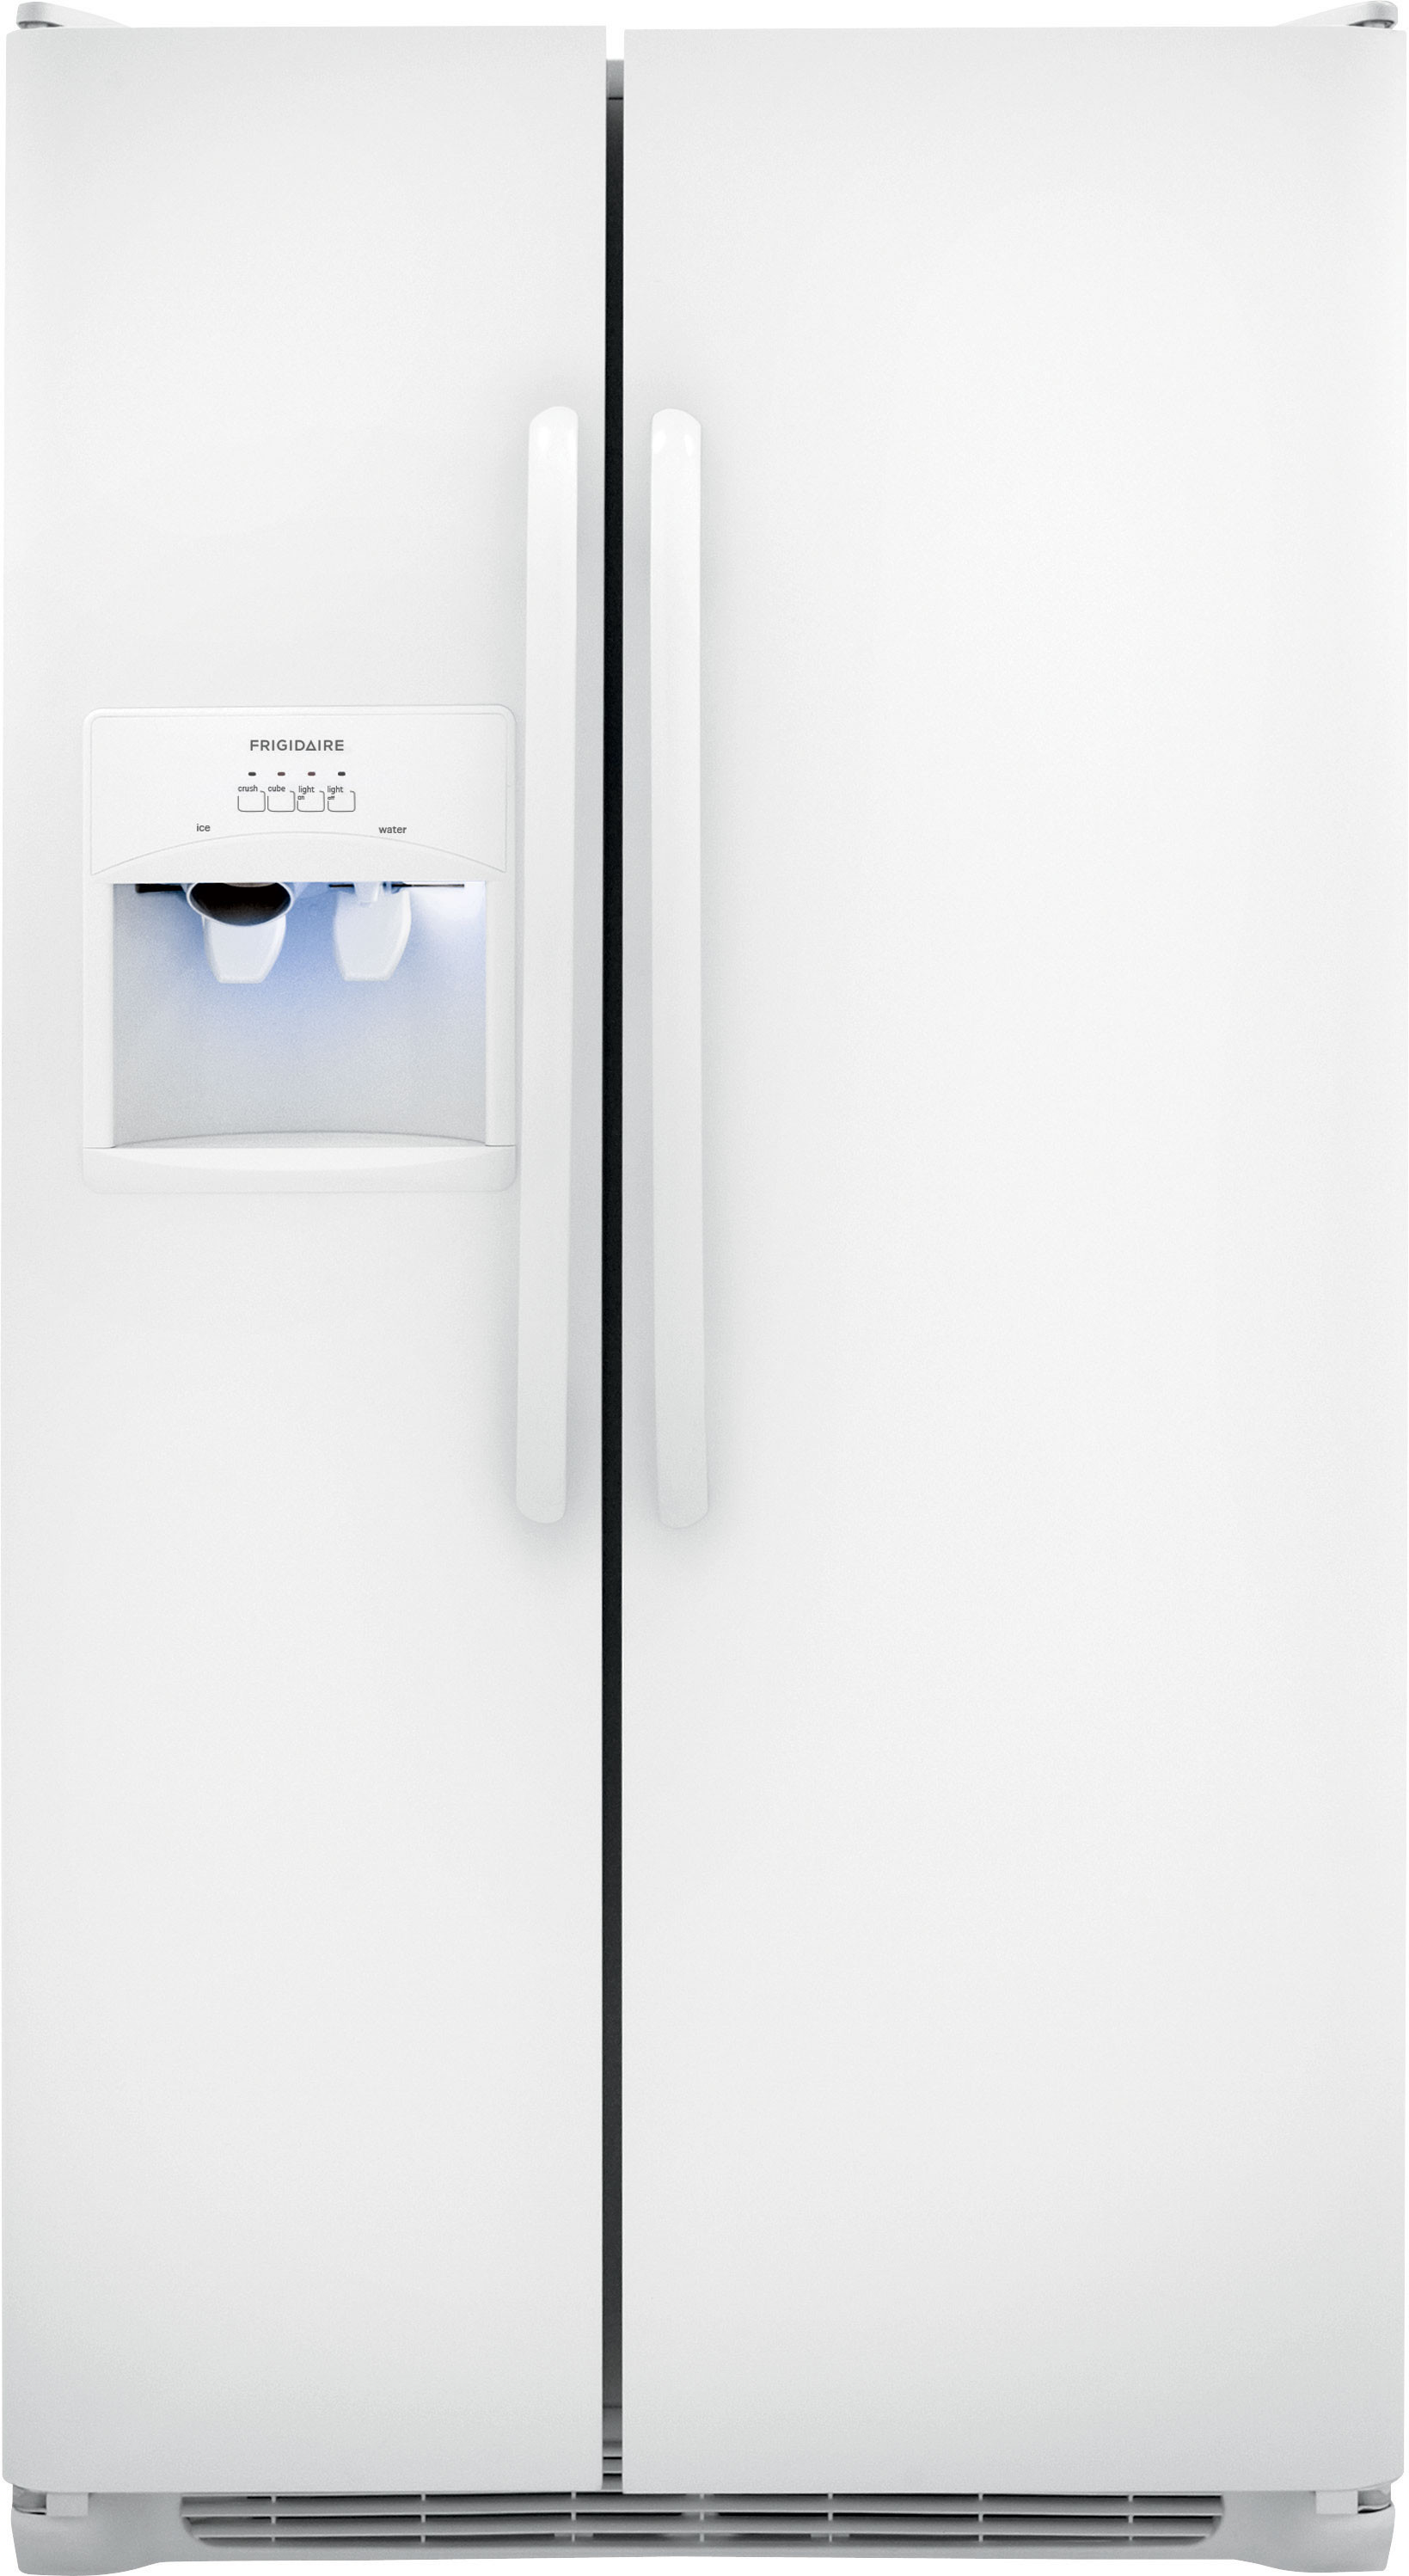 Frigidaire Ffss2614qp 36 Inch Side By Refrigerator With Puresource Filter External Dispenser Readyselect Controls Ice Water